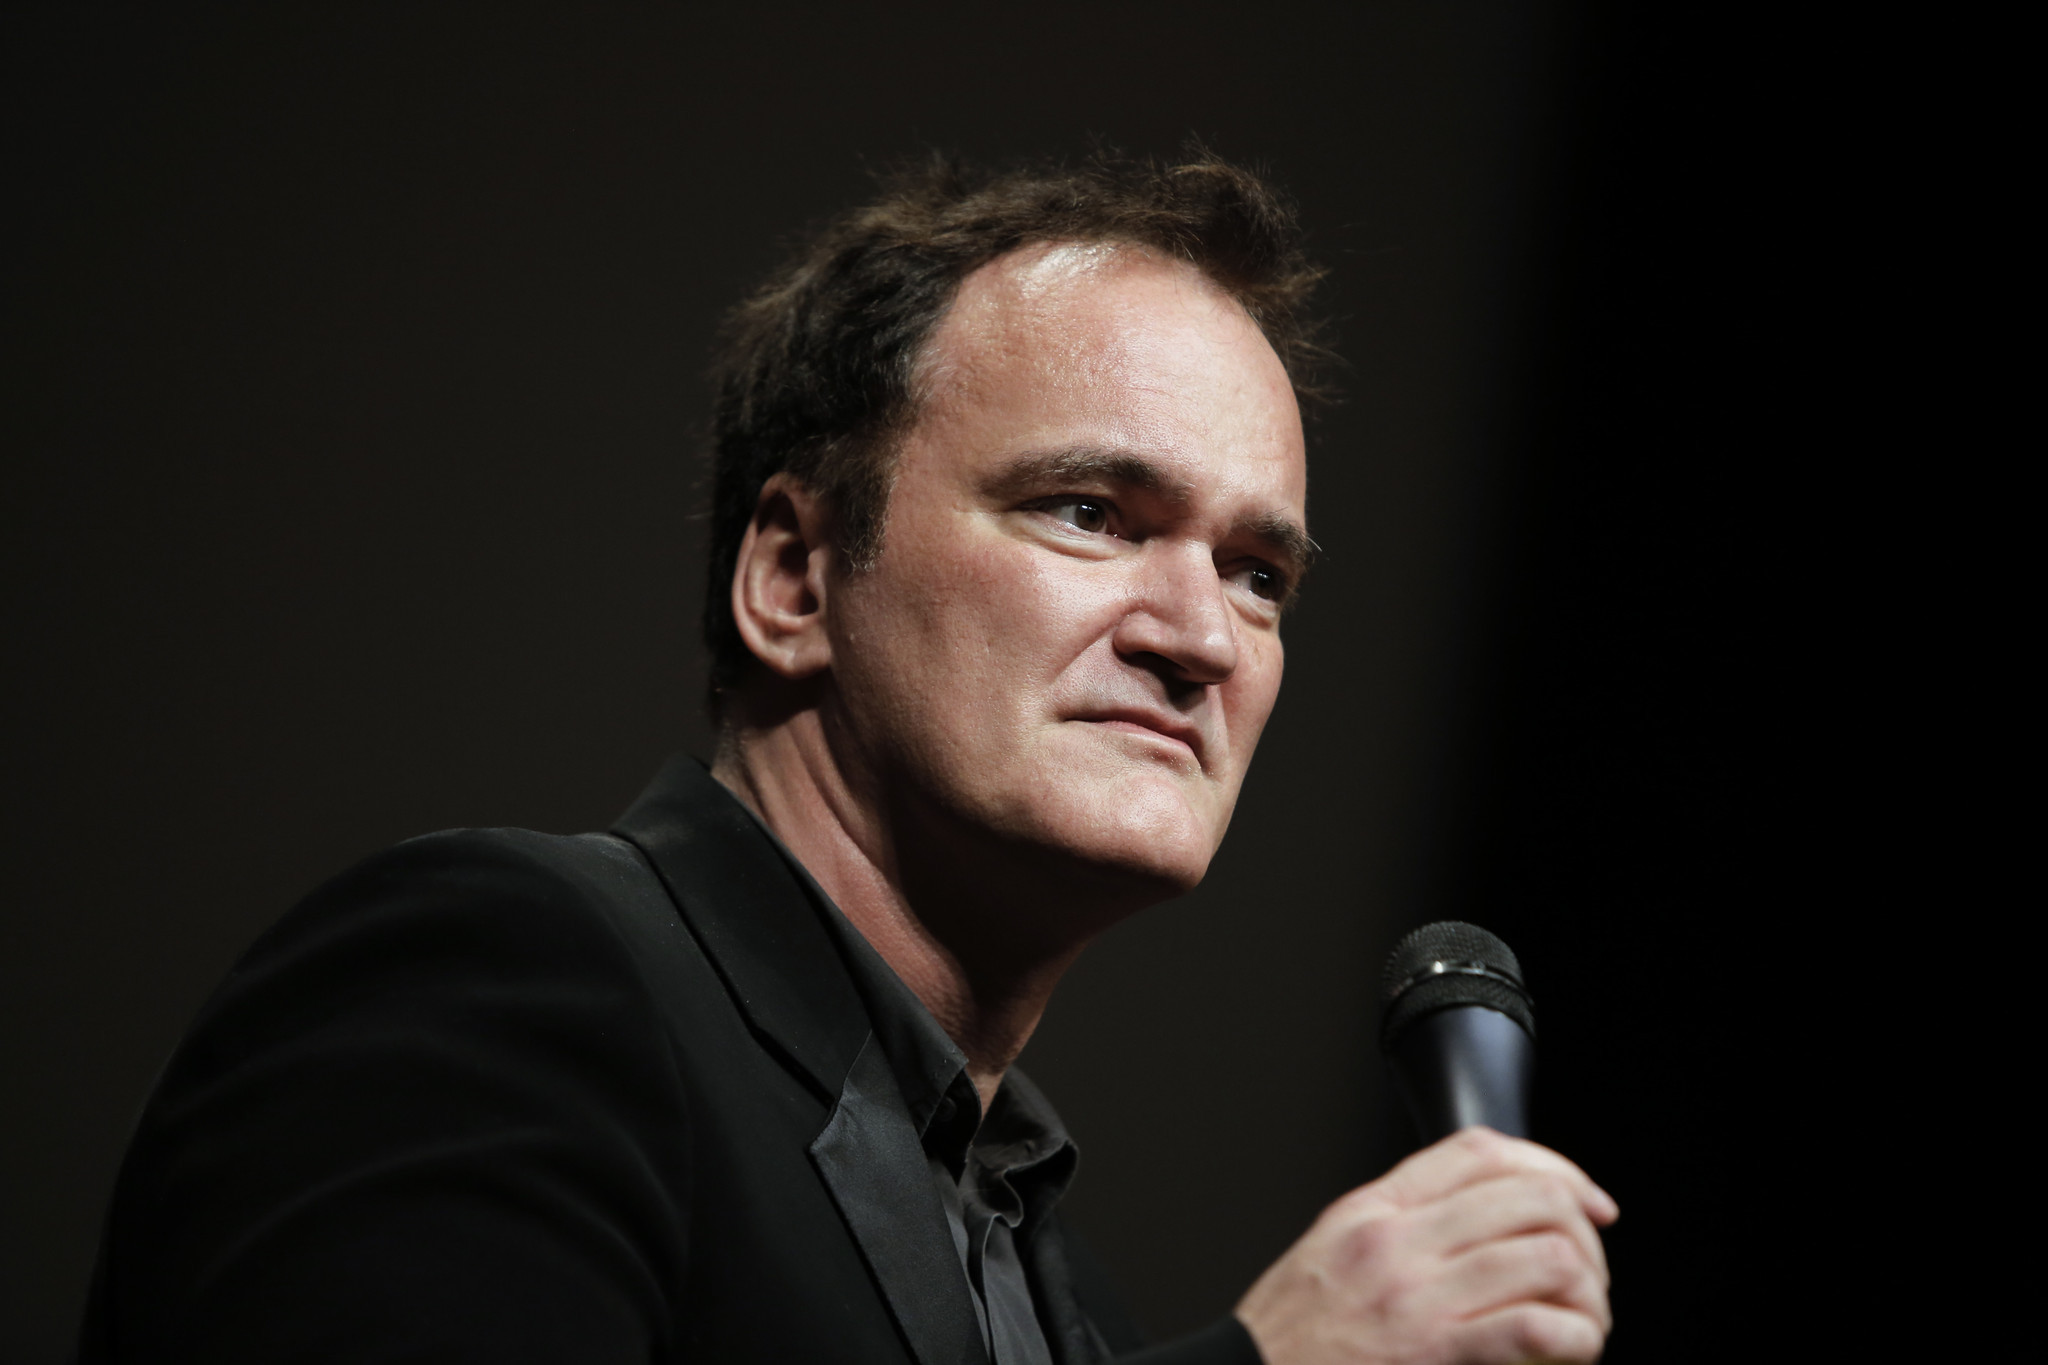 Quentin Tarantino Set To Make A Horror Film Based On The Manson Family Murders